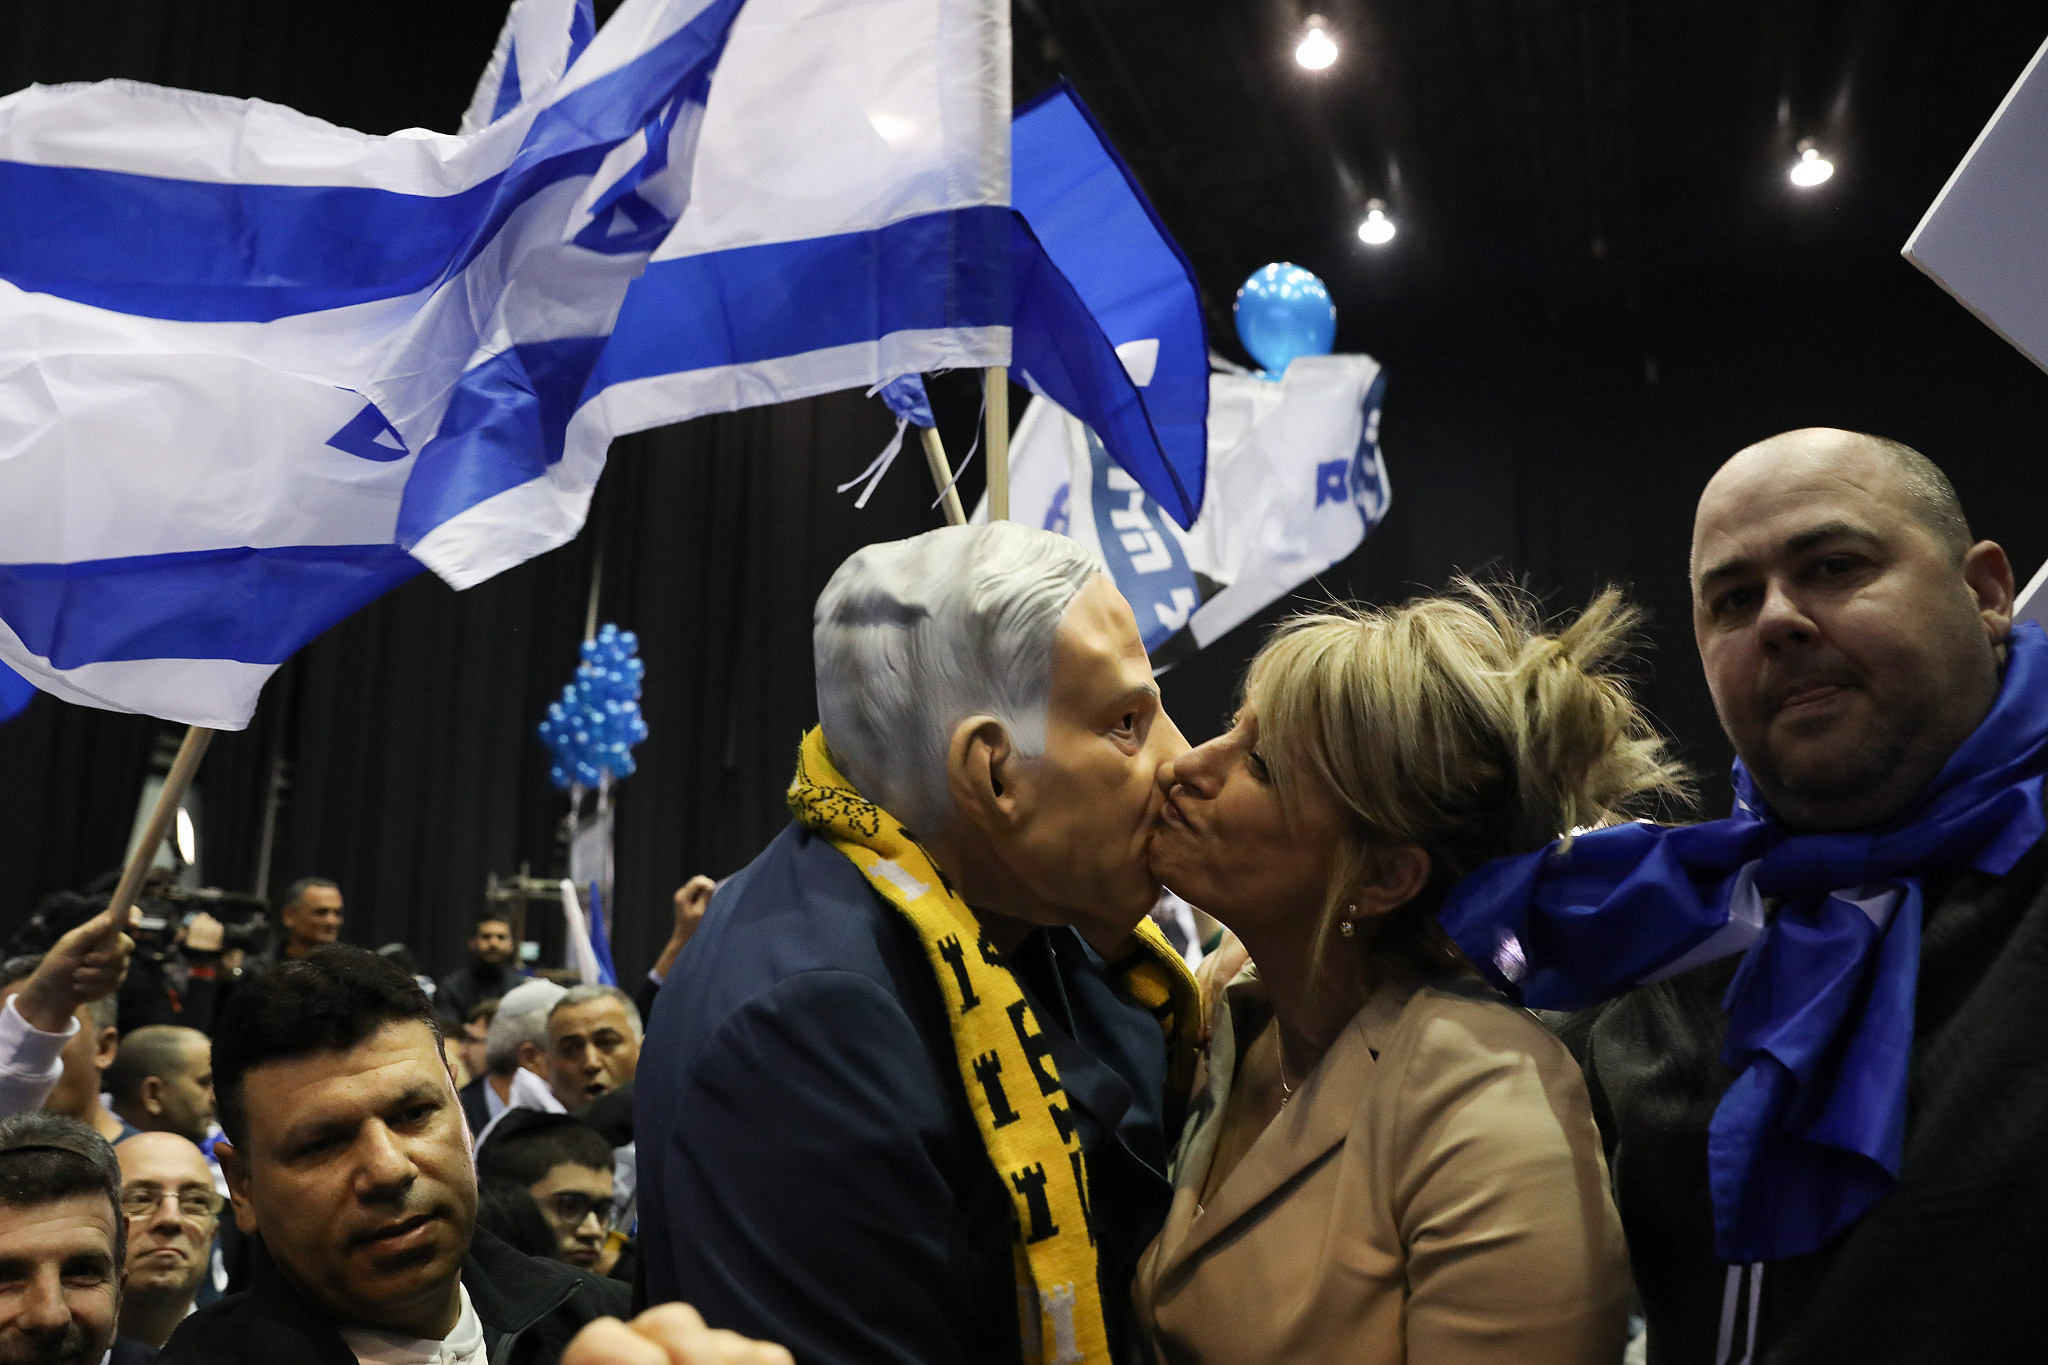 Likud supporters react to exit polls at the Likud headquarters on elections night in Tel Aviv, March 2, 2020. (Olivier Fitoussi/Flash90)